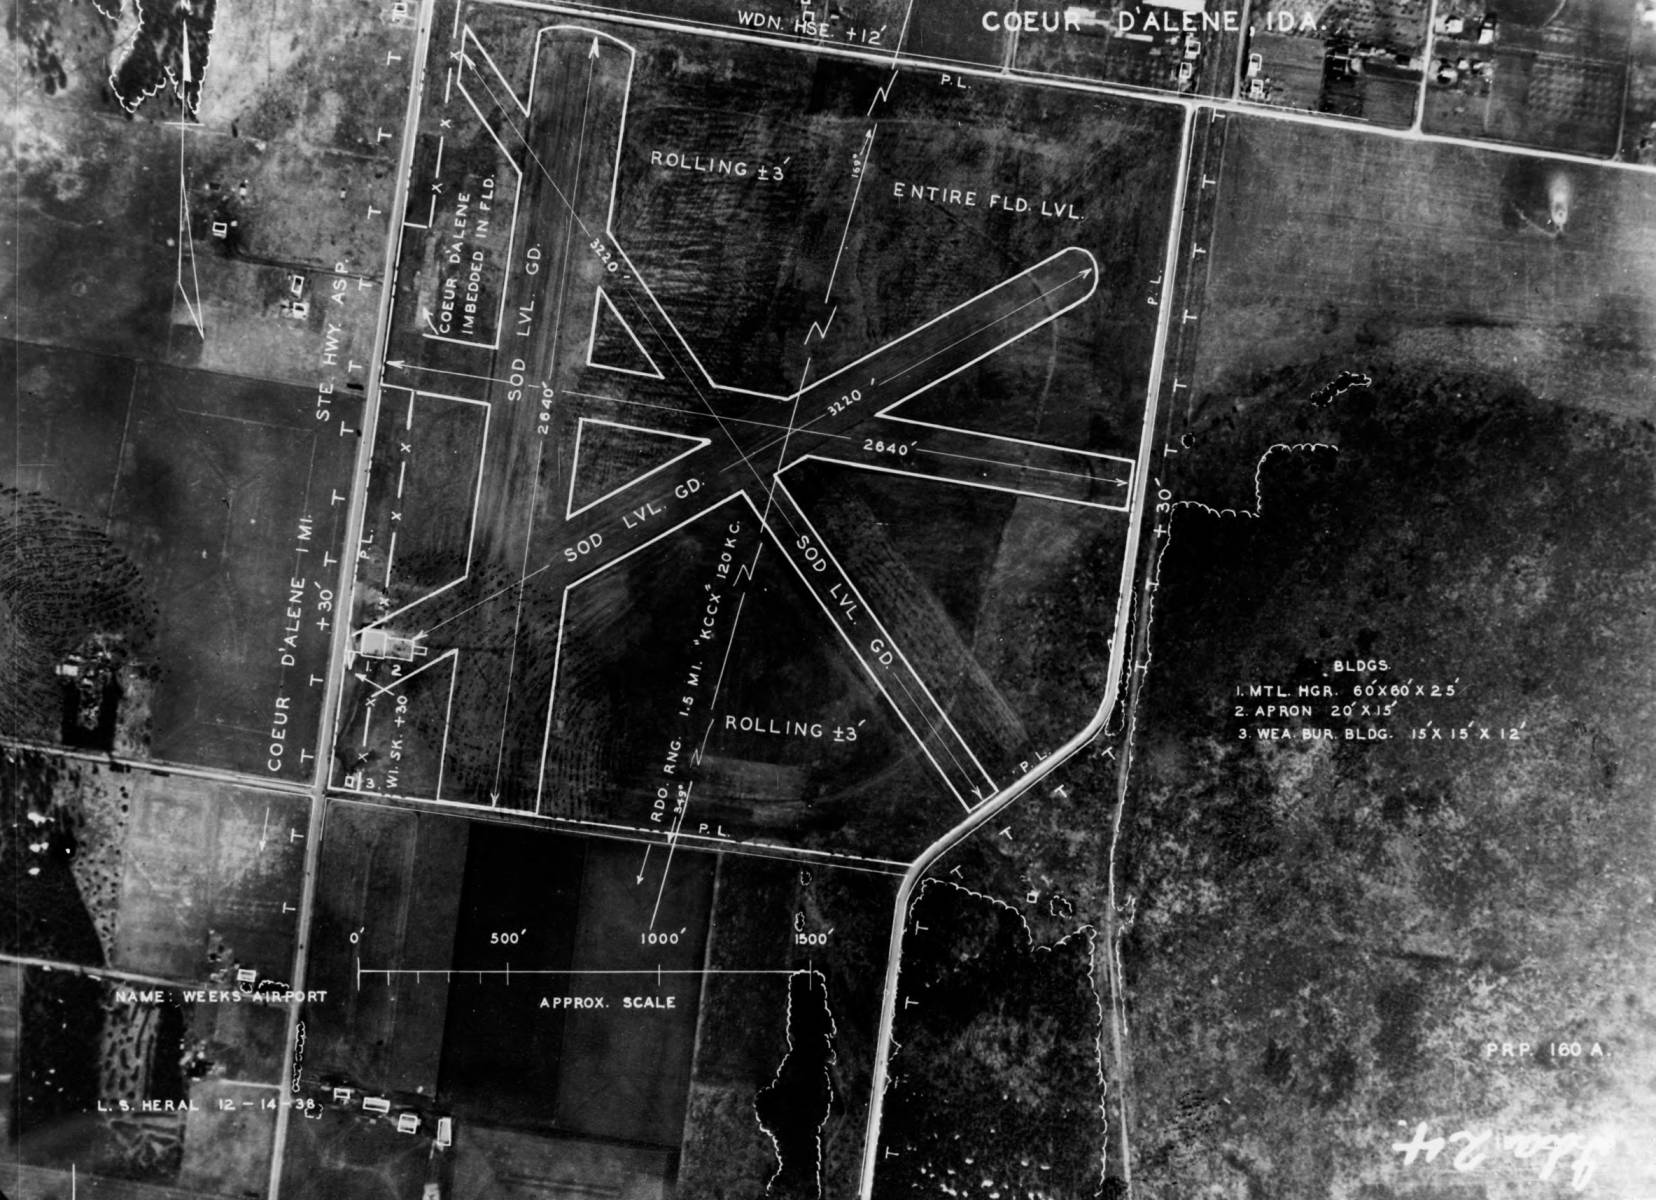 item thumbnail for Aerial survey of Weeks Field site, Coeur d'Alene